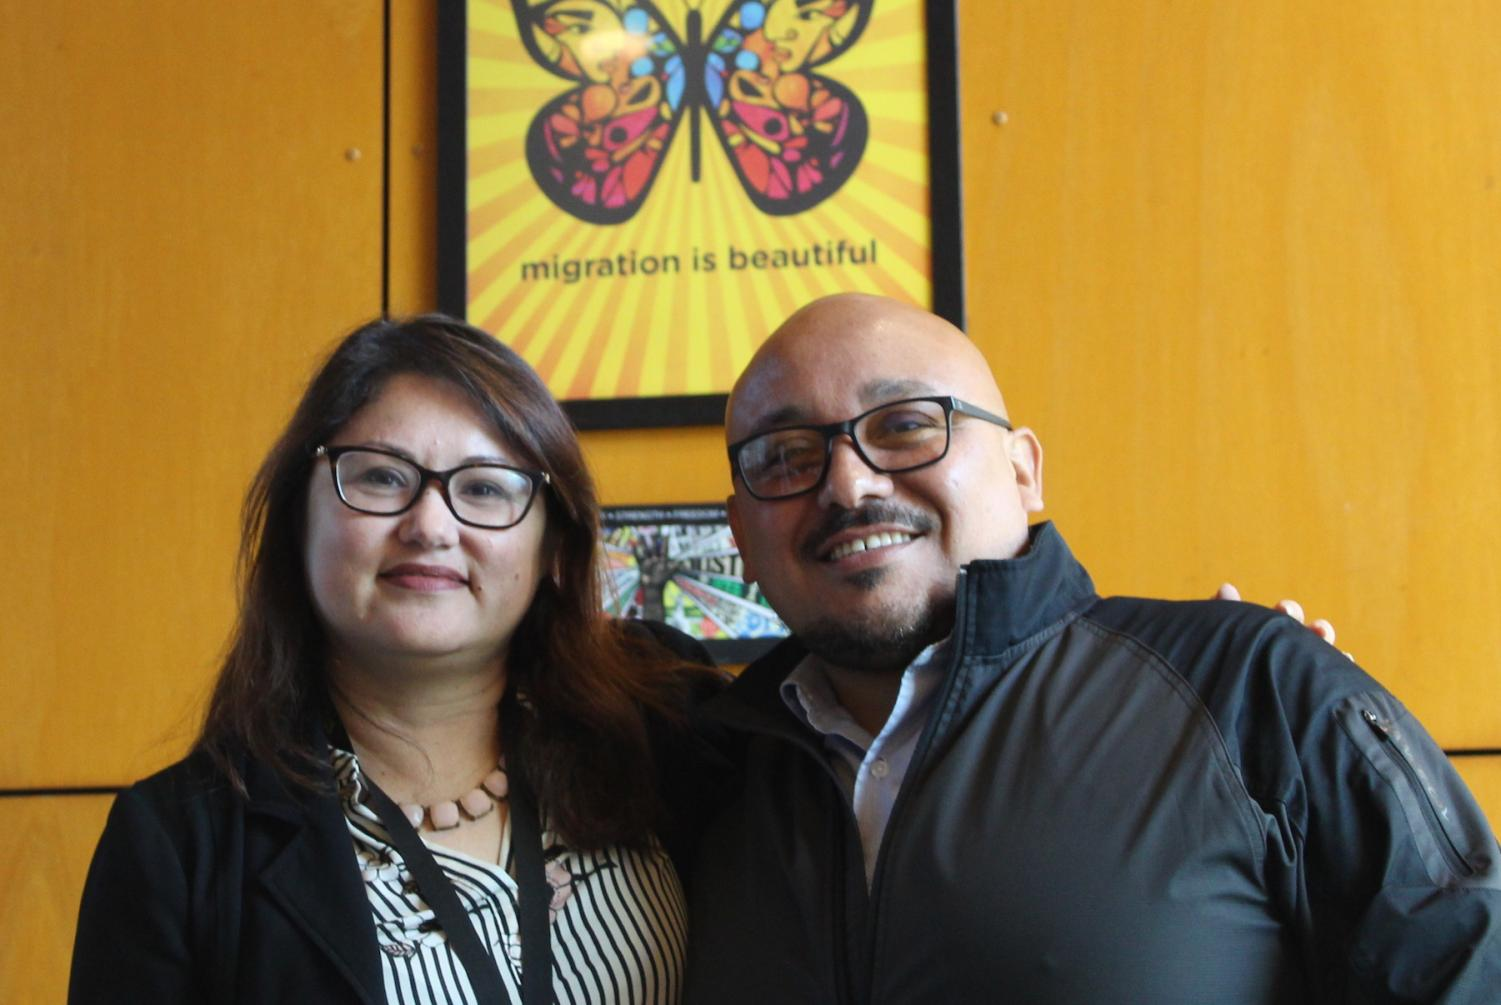 Noel Antonio Puga  (right) and Lilian Garcia (left) are available to whomever needs help.  By: Jonny Rico/City Times